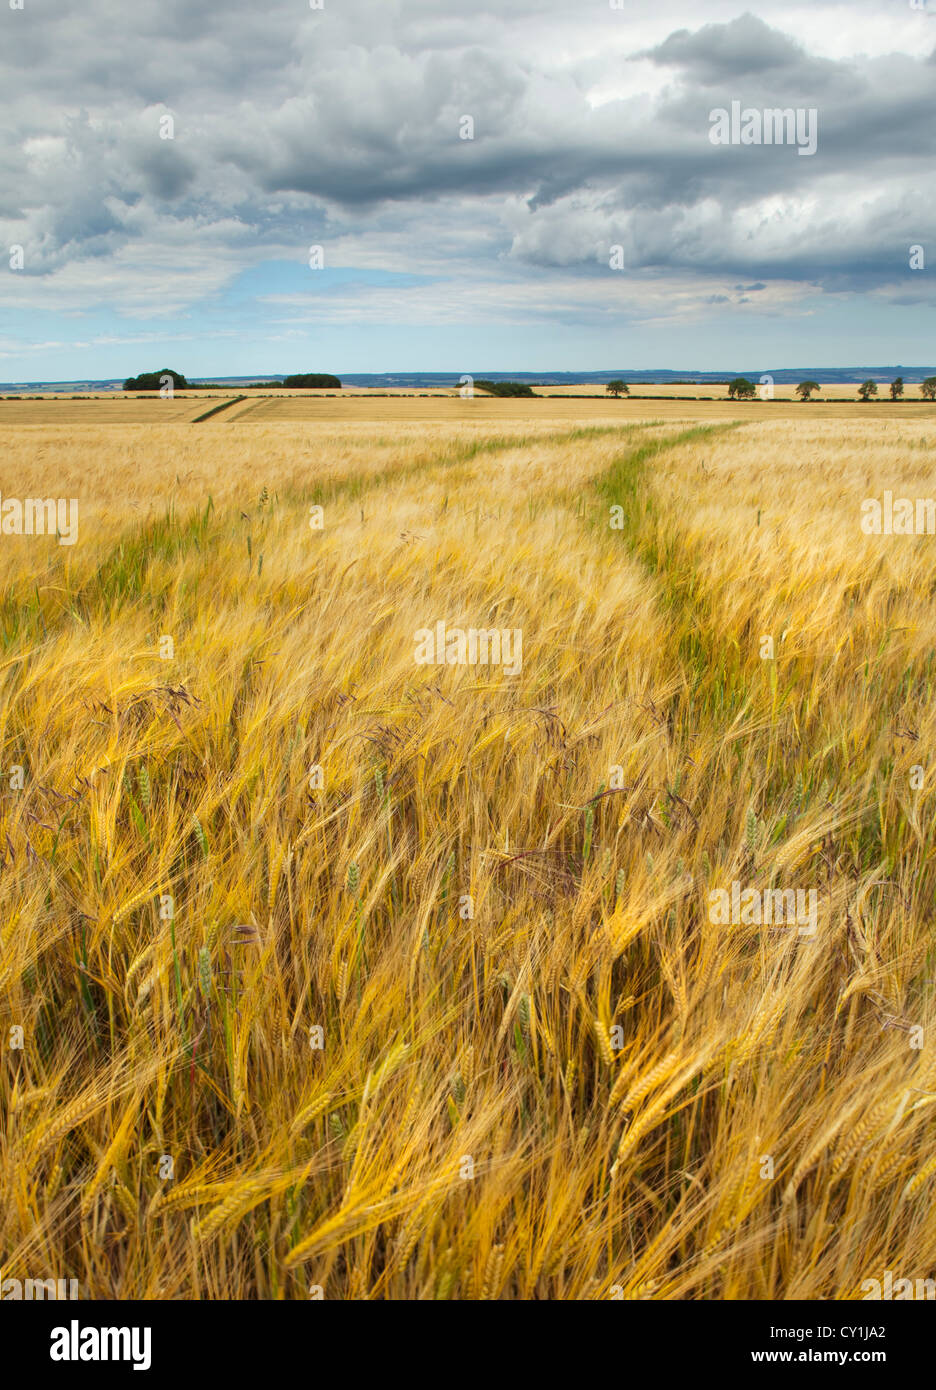 Wheat field, North Yorkshire - Stock Image